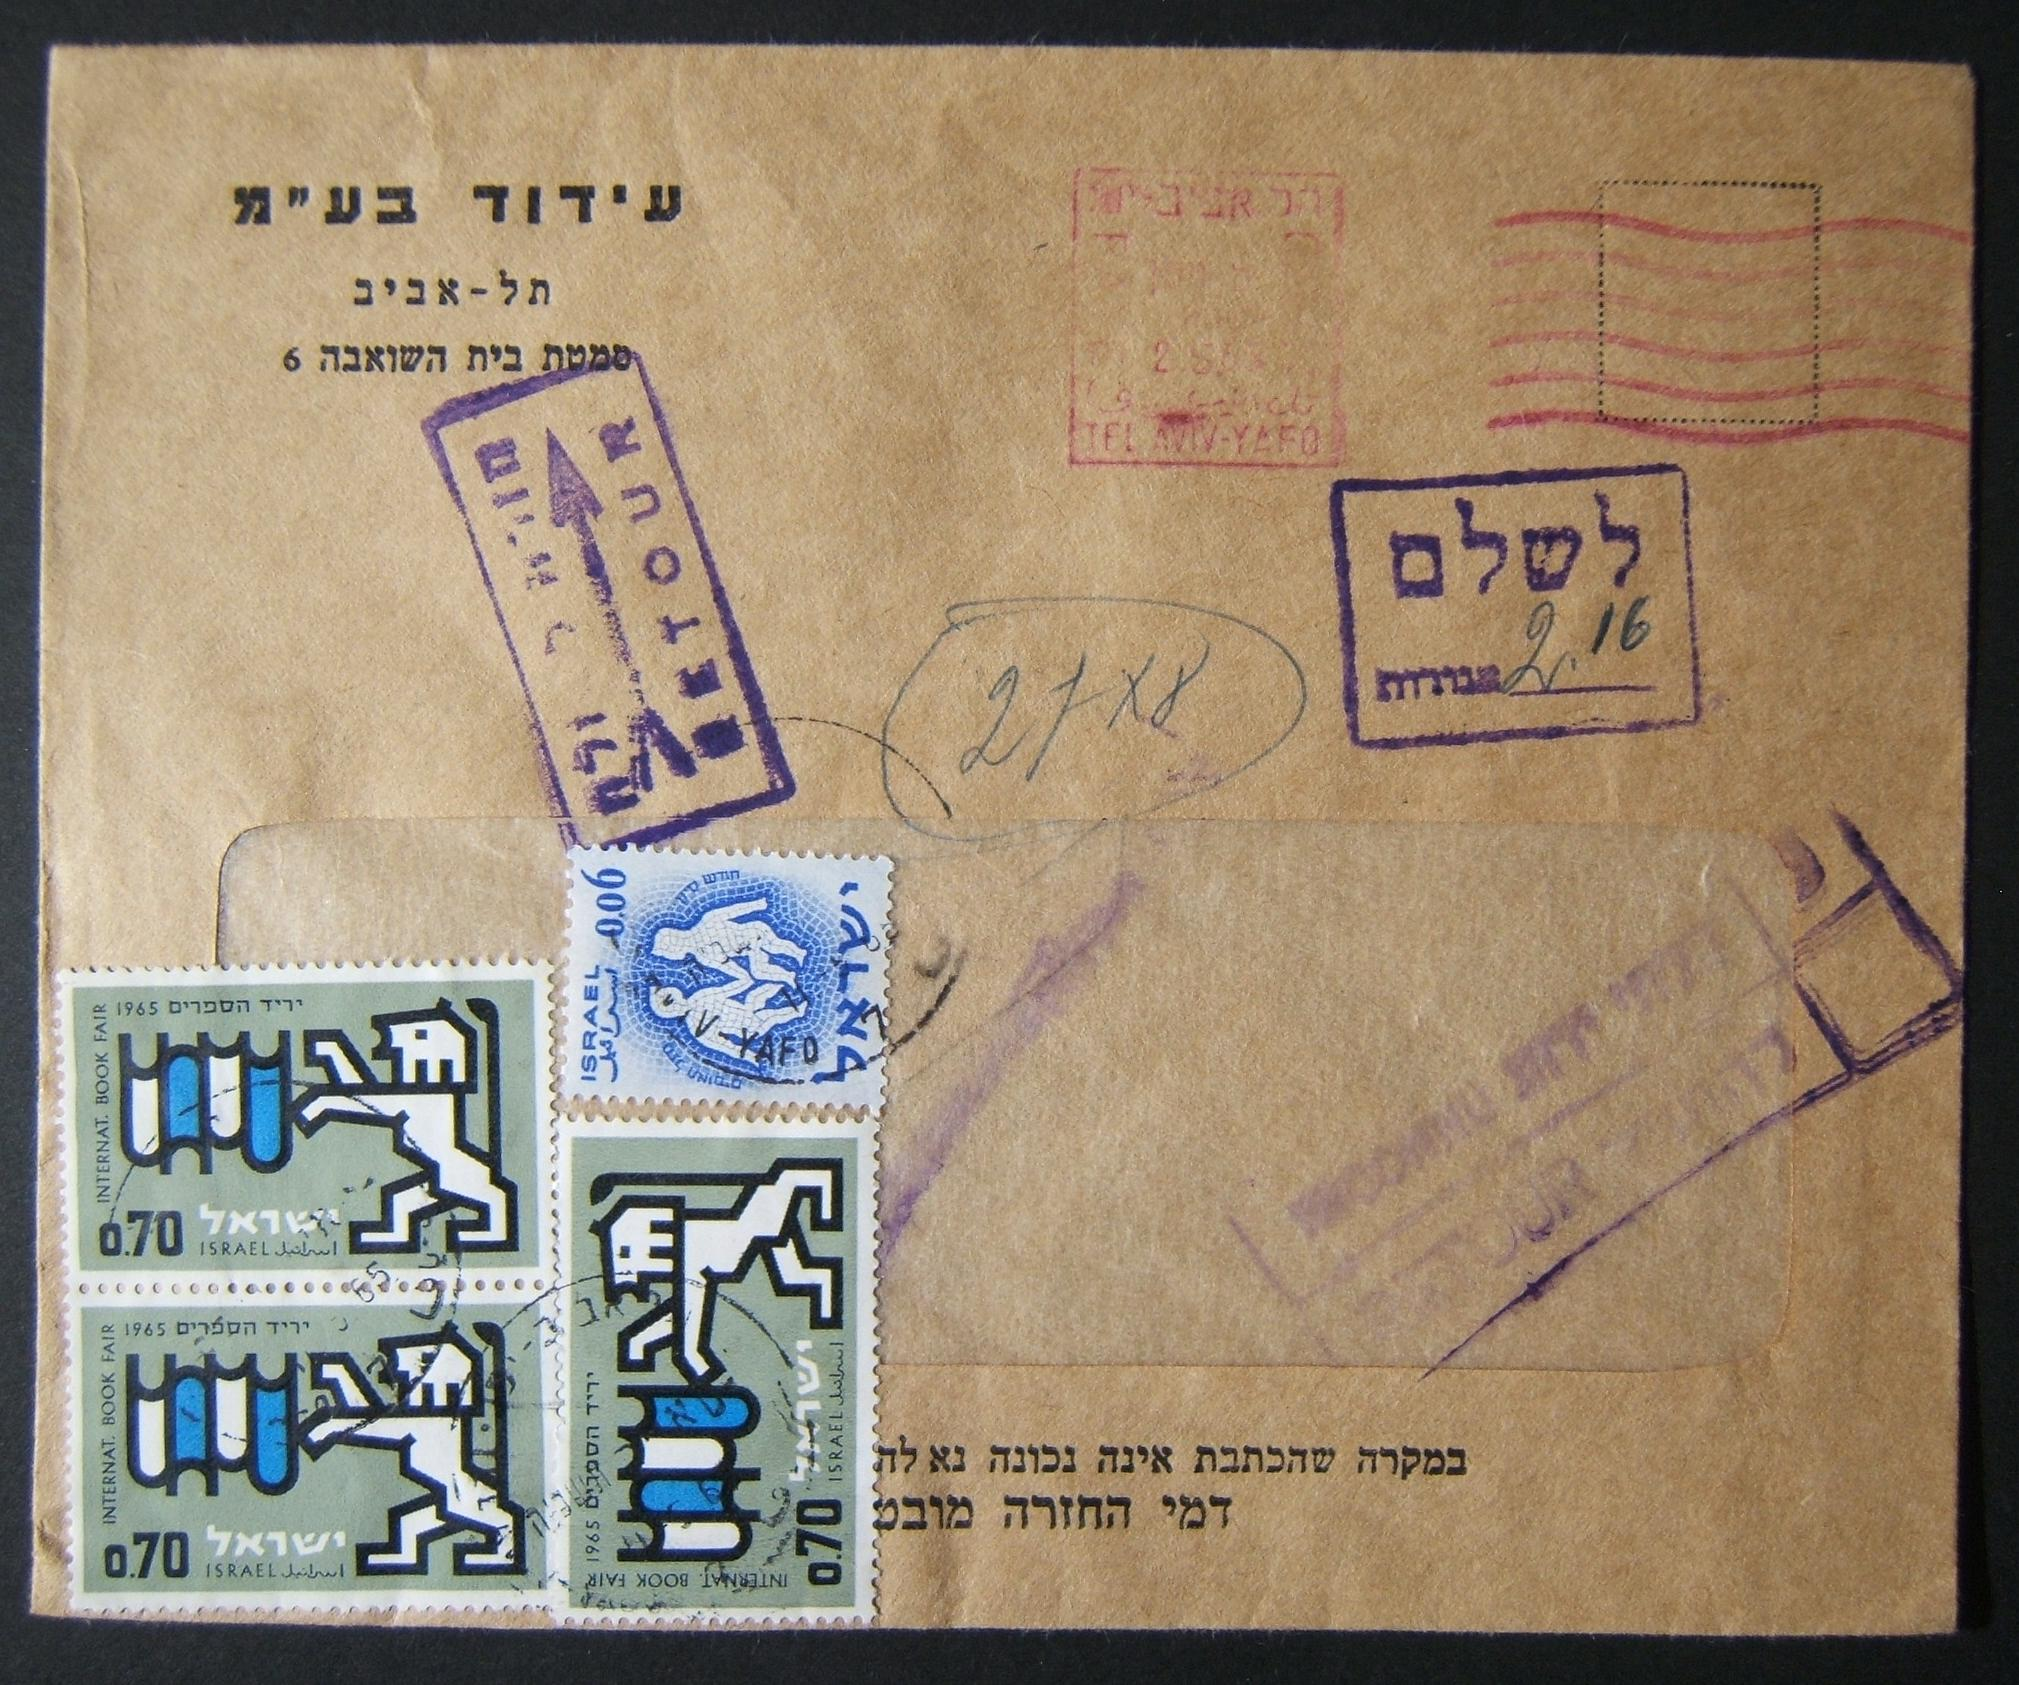 1965 domestic 'top of the pile' taxed franking: 2-5-1965 printed matter commercial cover ex TLV branch of Idud Ltd. franked by machine prepayment at the DO-11 period 8 Ag PM rate b